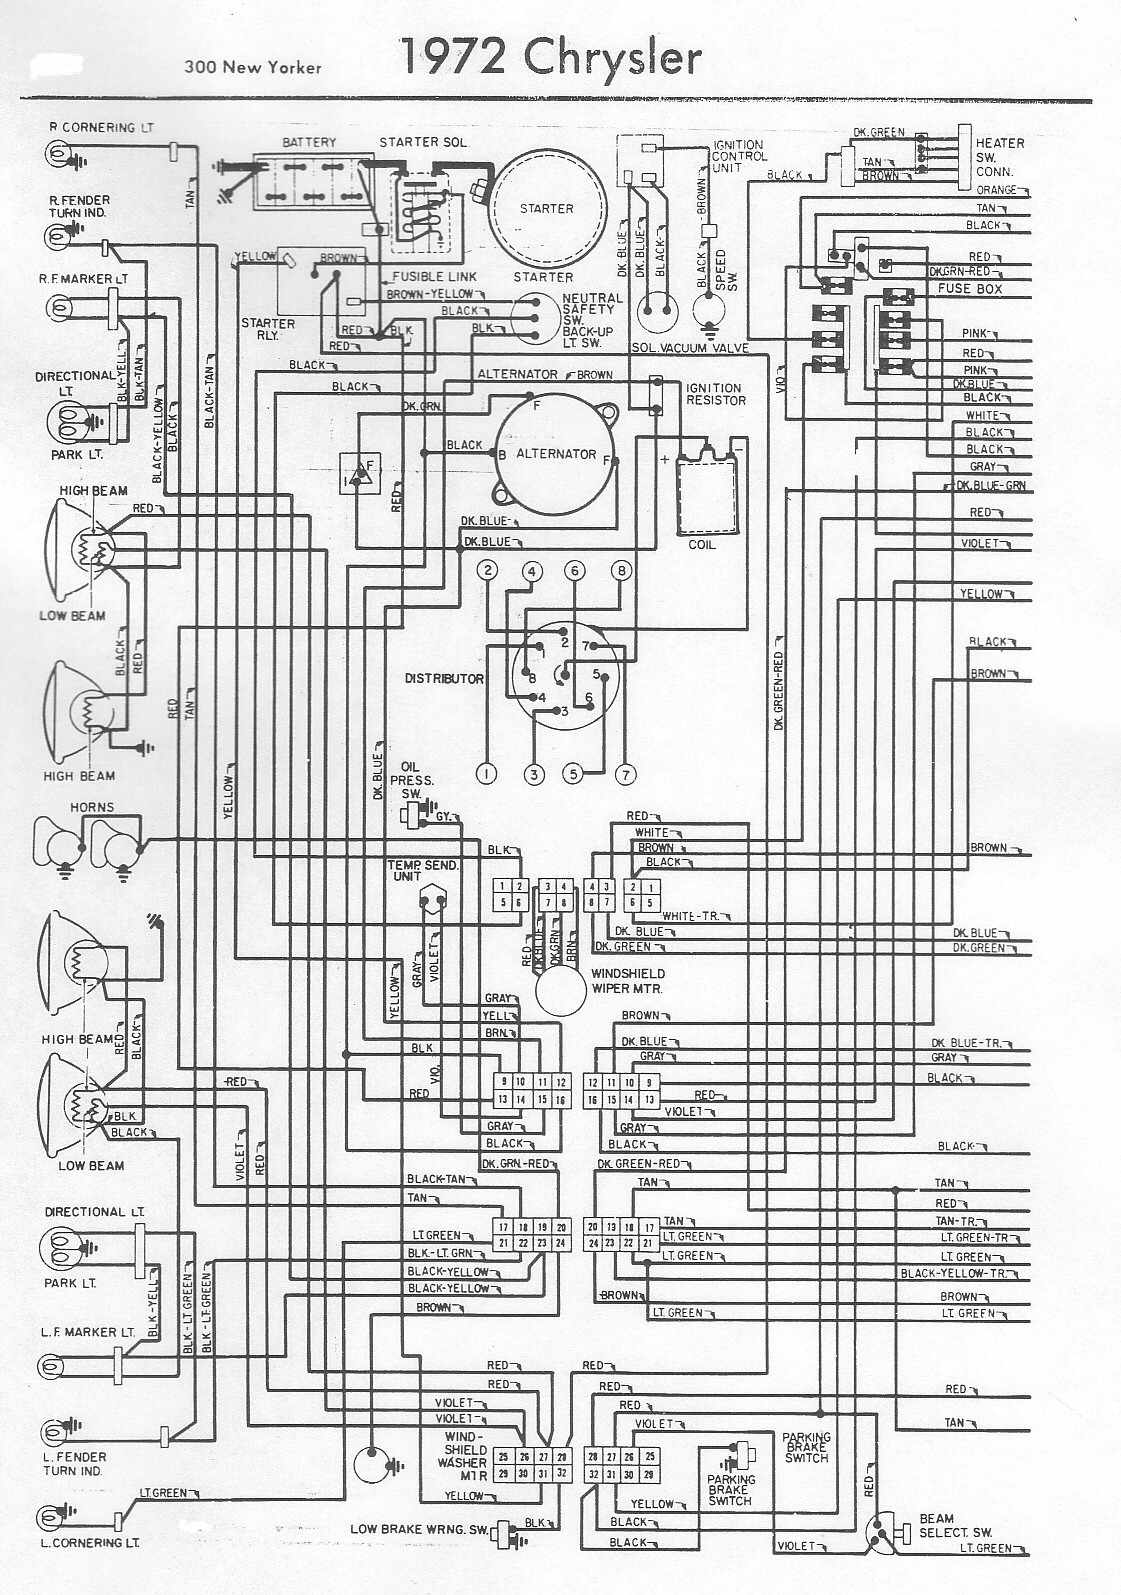 medium resolution of 1954 mopar wiring diagrams simple wiring post mymopar wiring diagram 1954 chrysler wiring diagram data